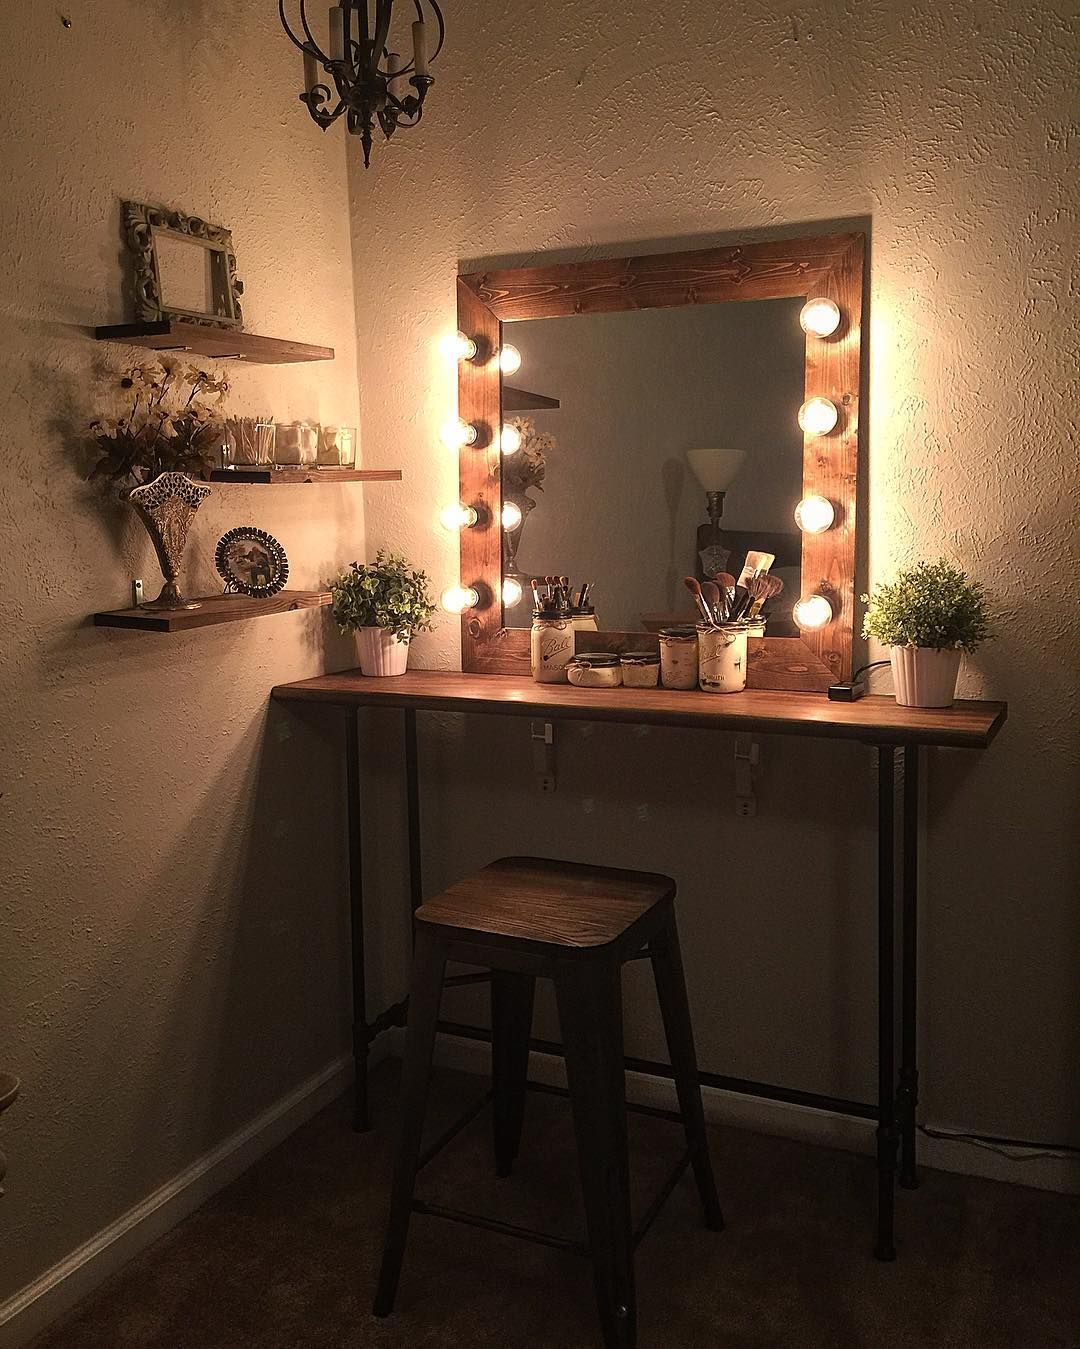 Vintage Makeup Vanity With Lights. Cute easy simple DIY wood rustic vanity mirror with hollywood style lights  4 any makeup room